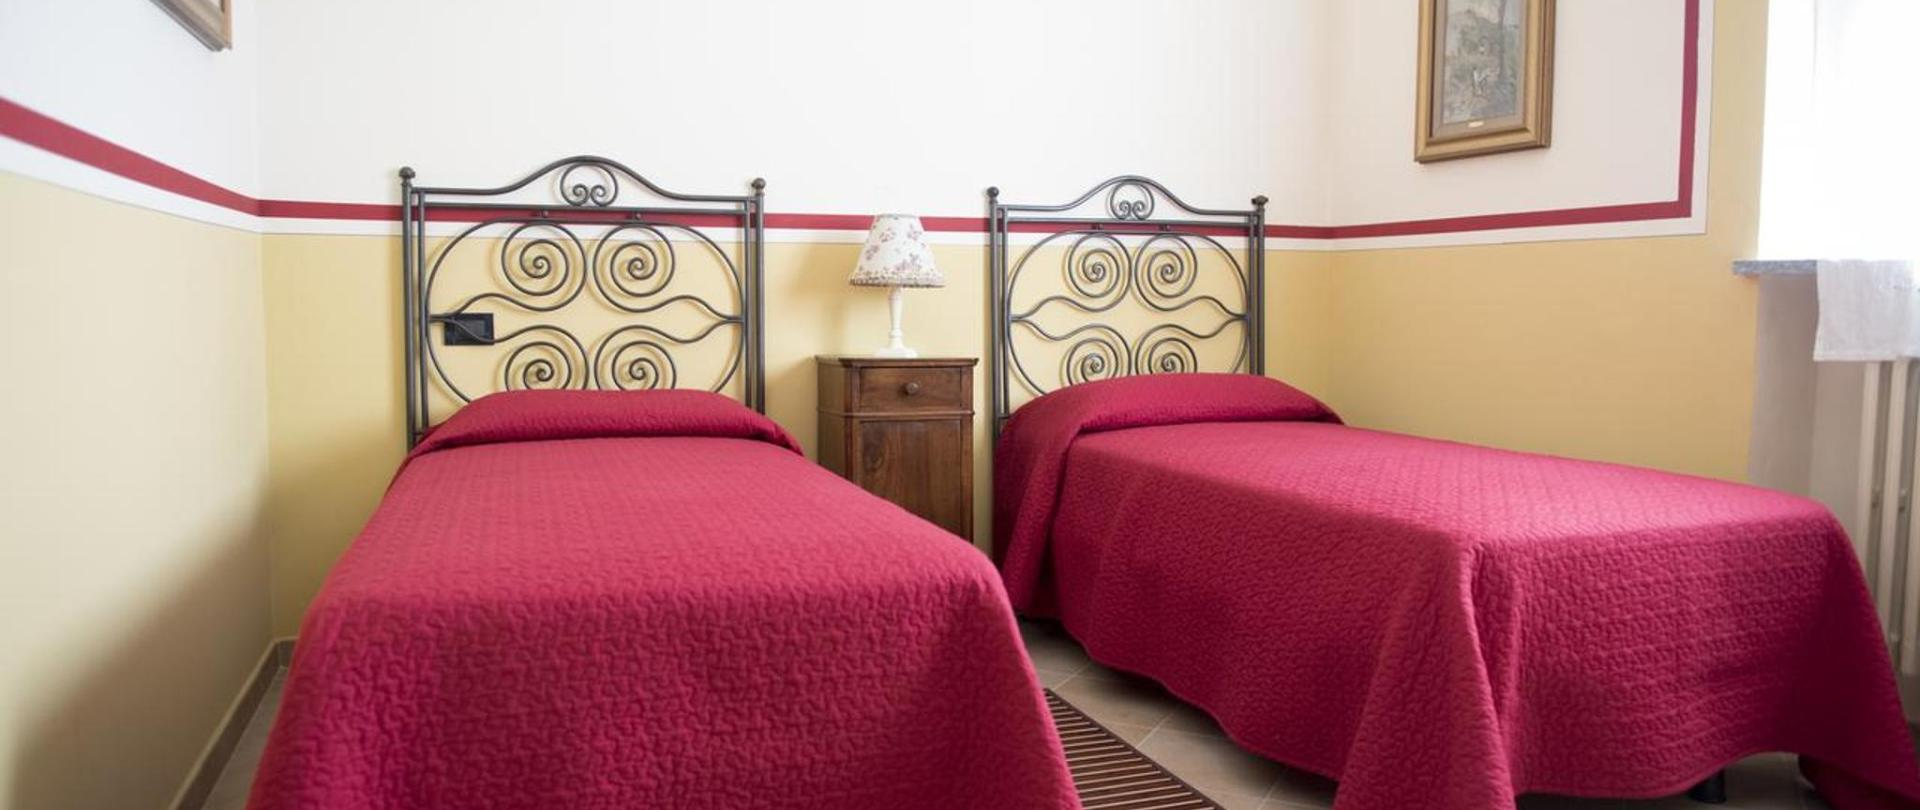 IlBricco bed and breakfast Asti.jpg